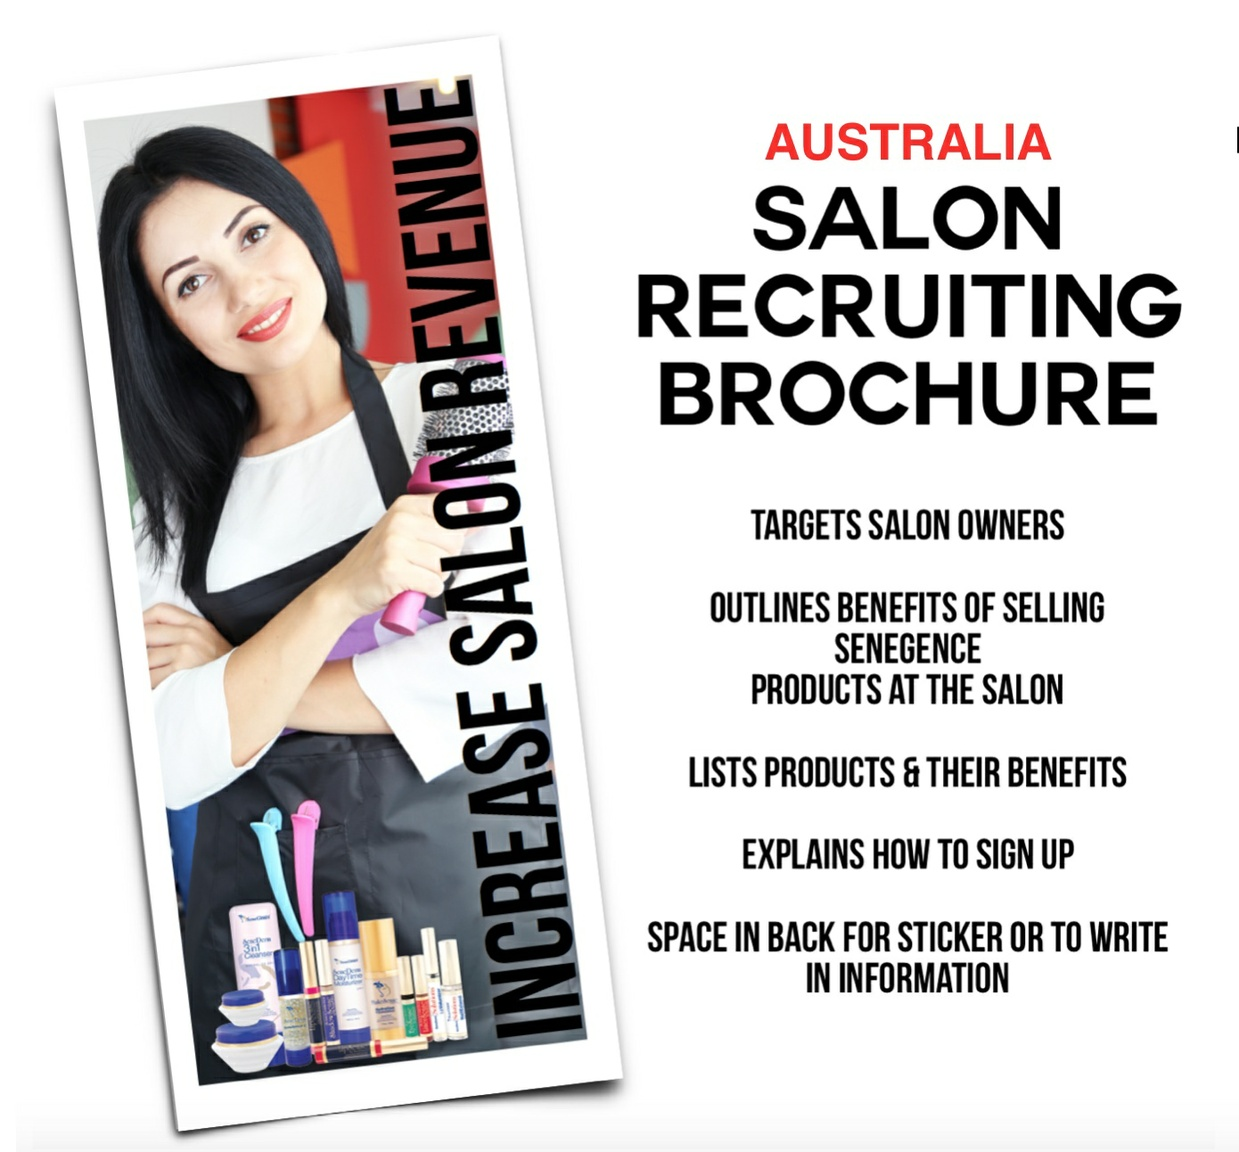 AUS - Salon Recruiting Brochure